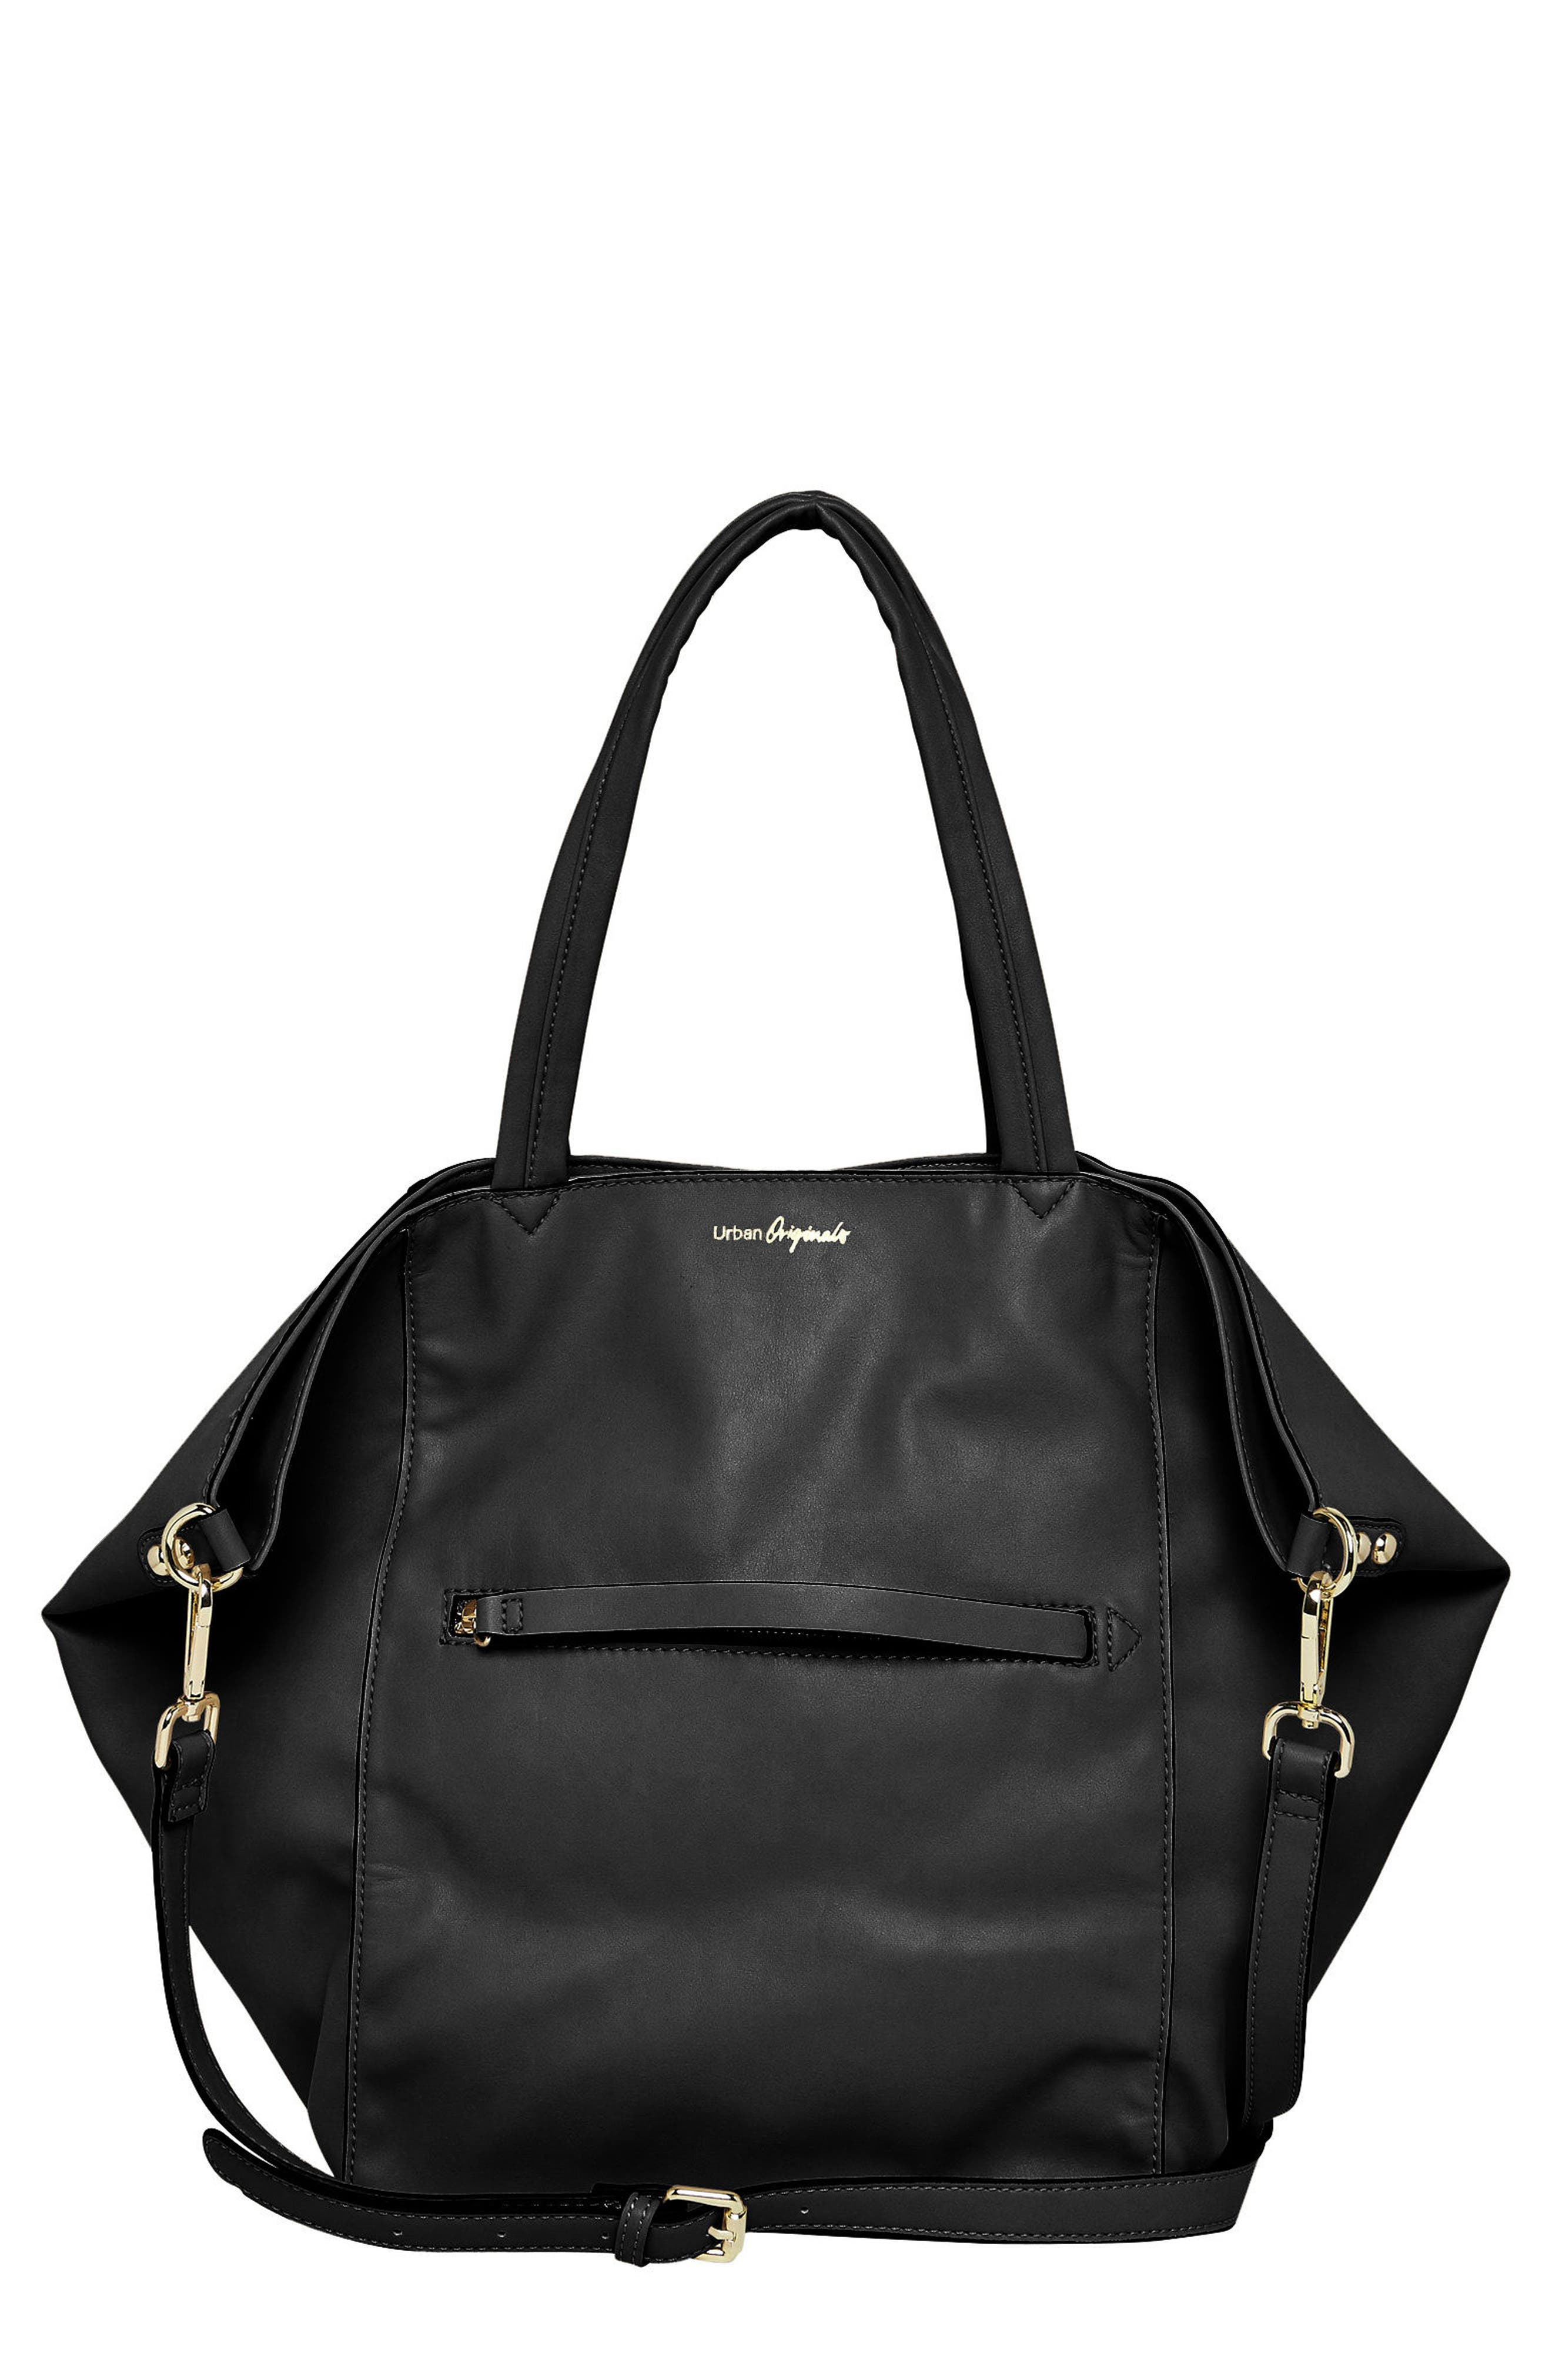 Every Girl Vegan Leather Tote,                             Main thumbnail 1, color,                             Black